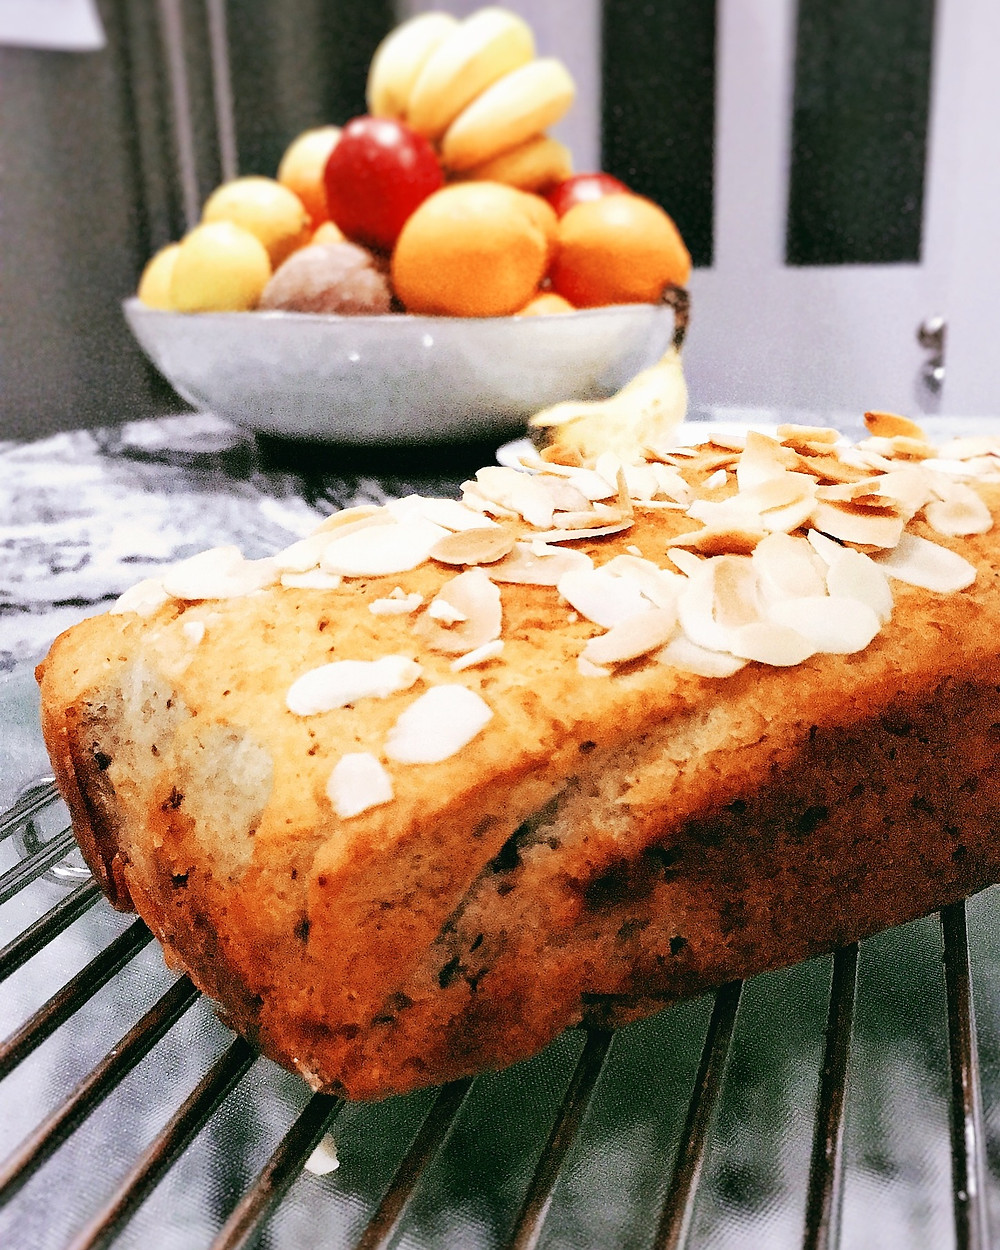 Sugar, dairy and gluten free banana bread recipe_You Need A Nutritional Therapist_Kay Ali